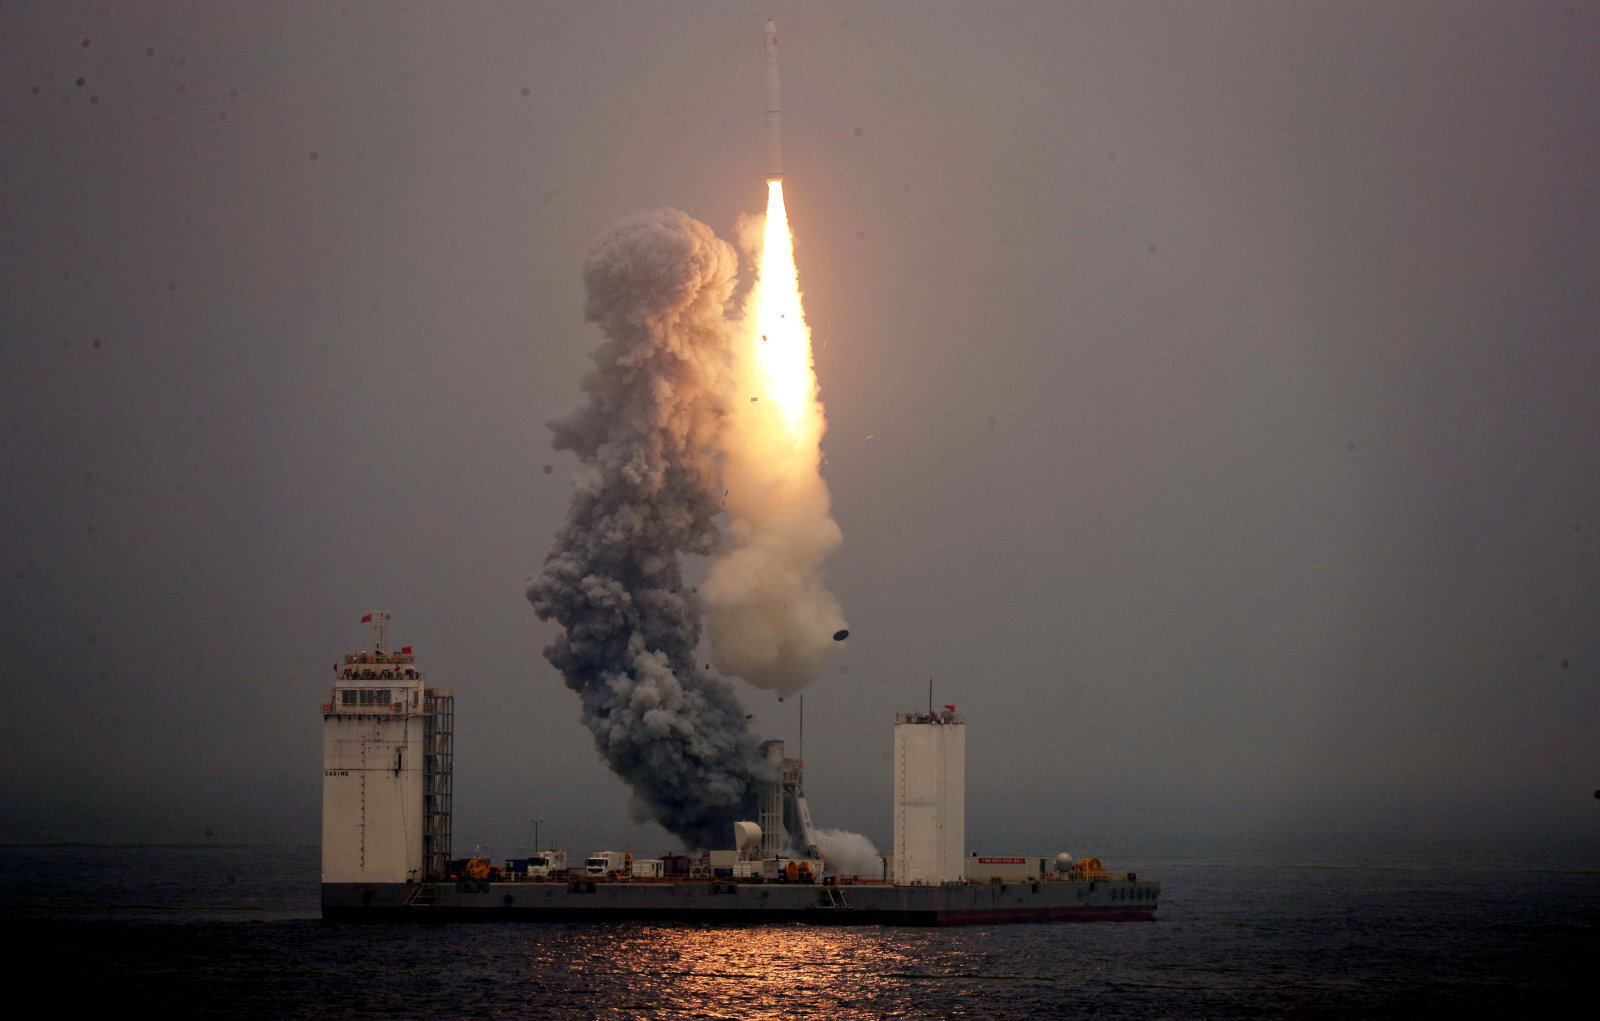 Long March 11 carrier rocket takes off from a mobile launch platform in the Yellow Sea off Shandong province